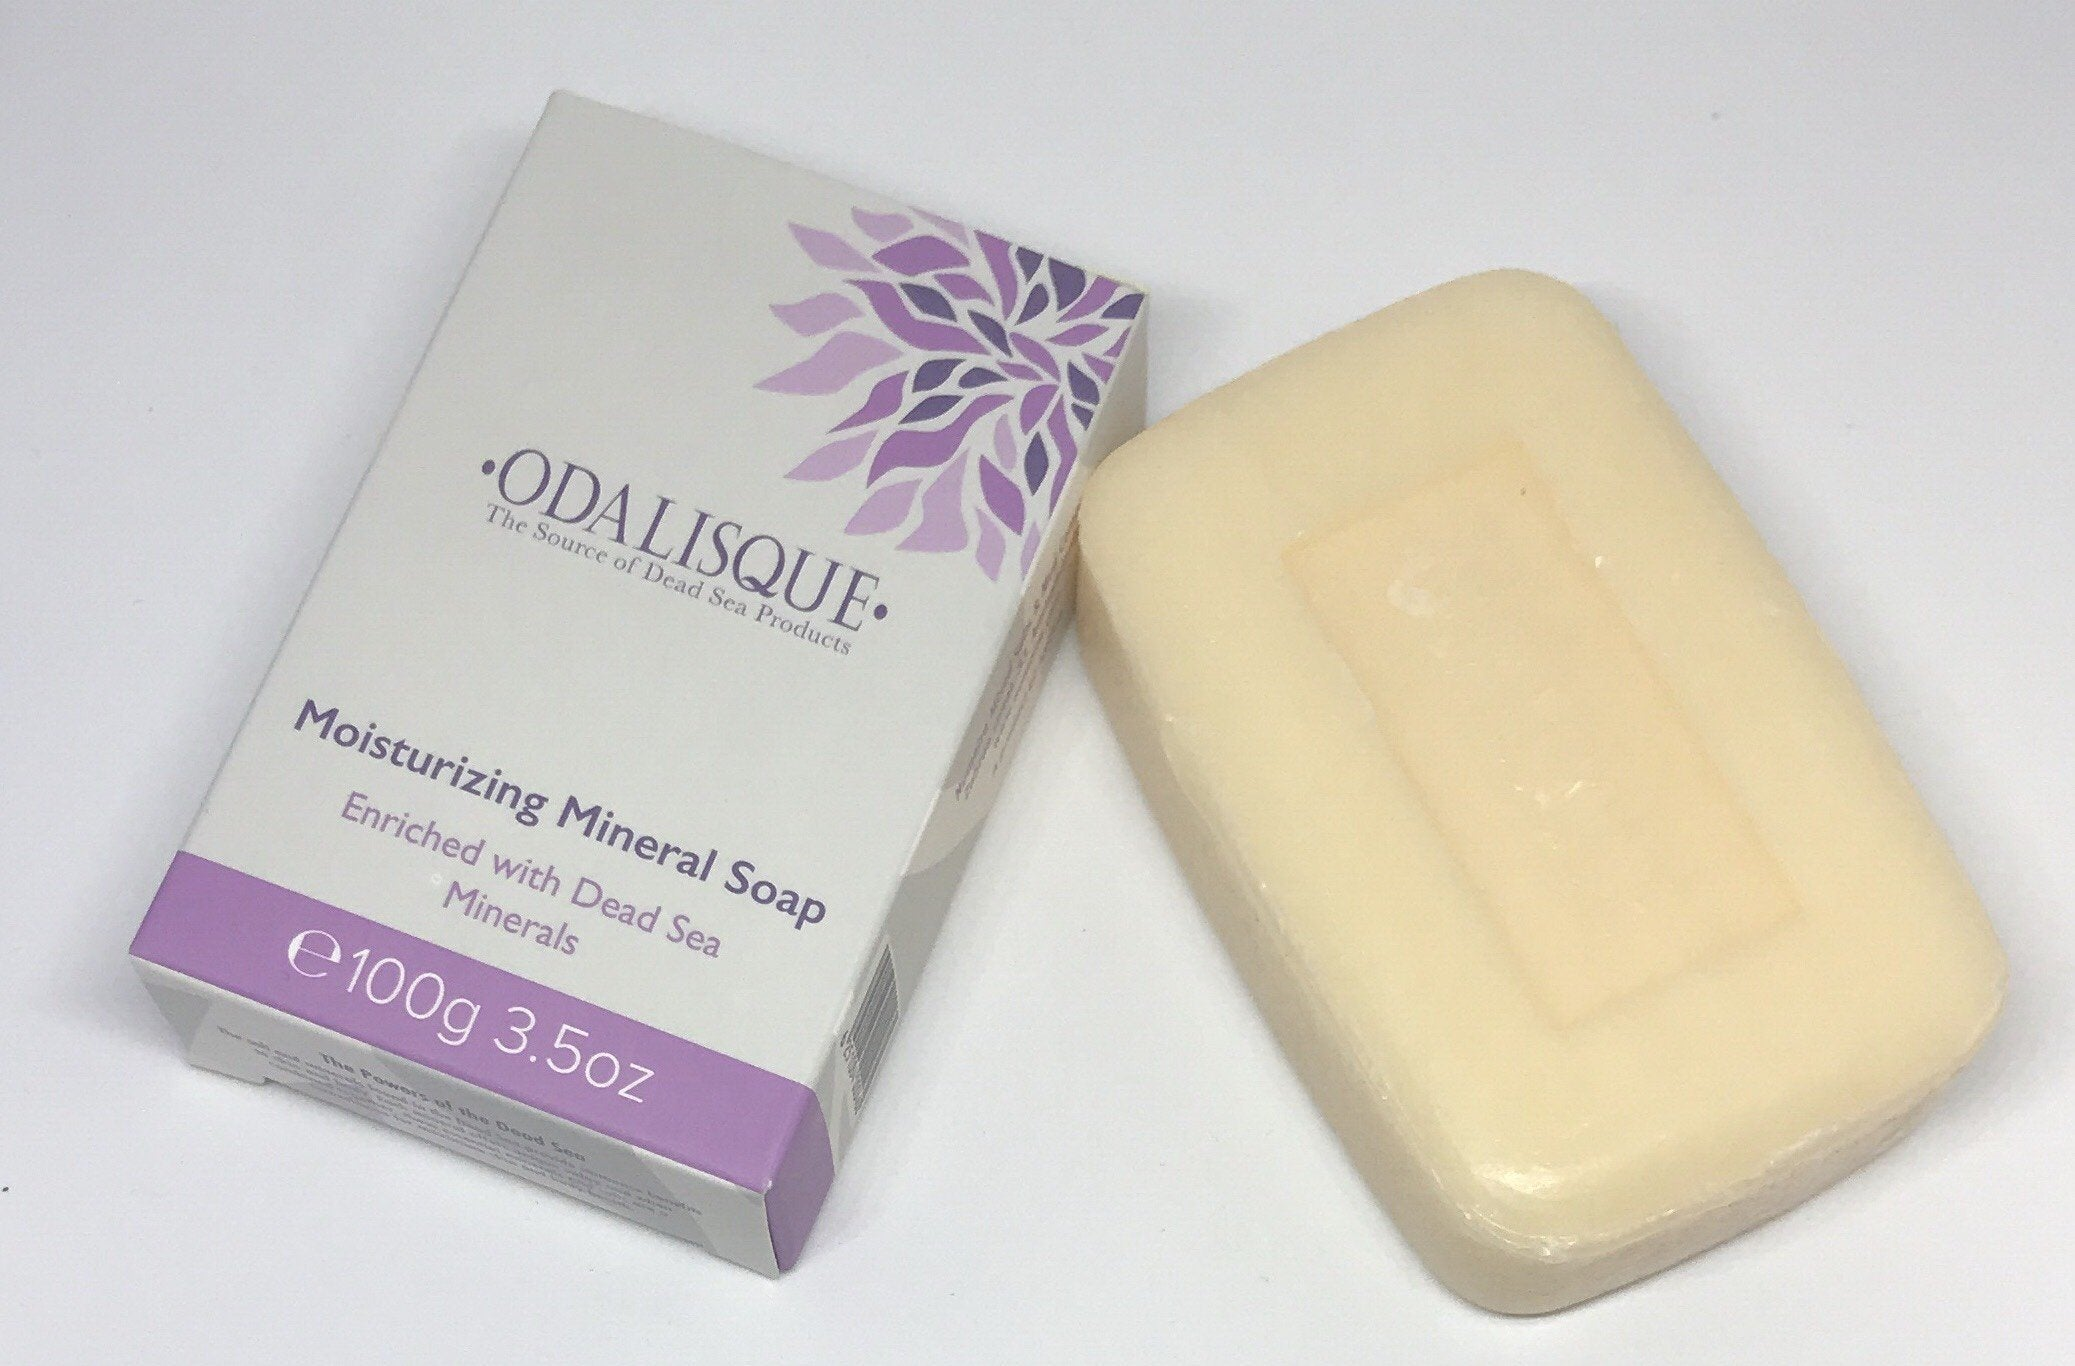 Moisturizing dead sea mineral soap -Dead Sea skin care Products-Odalisque California